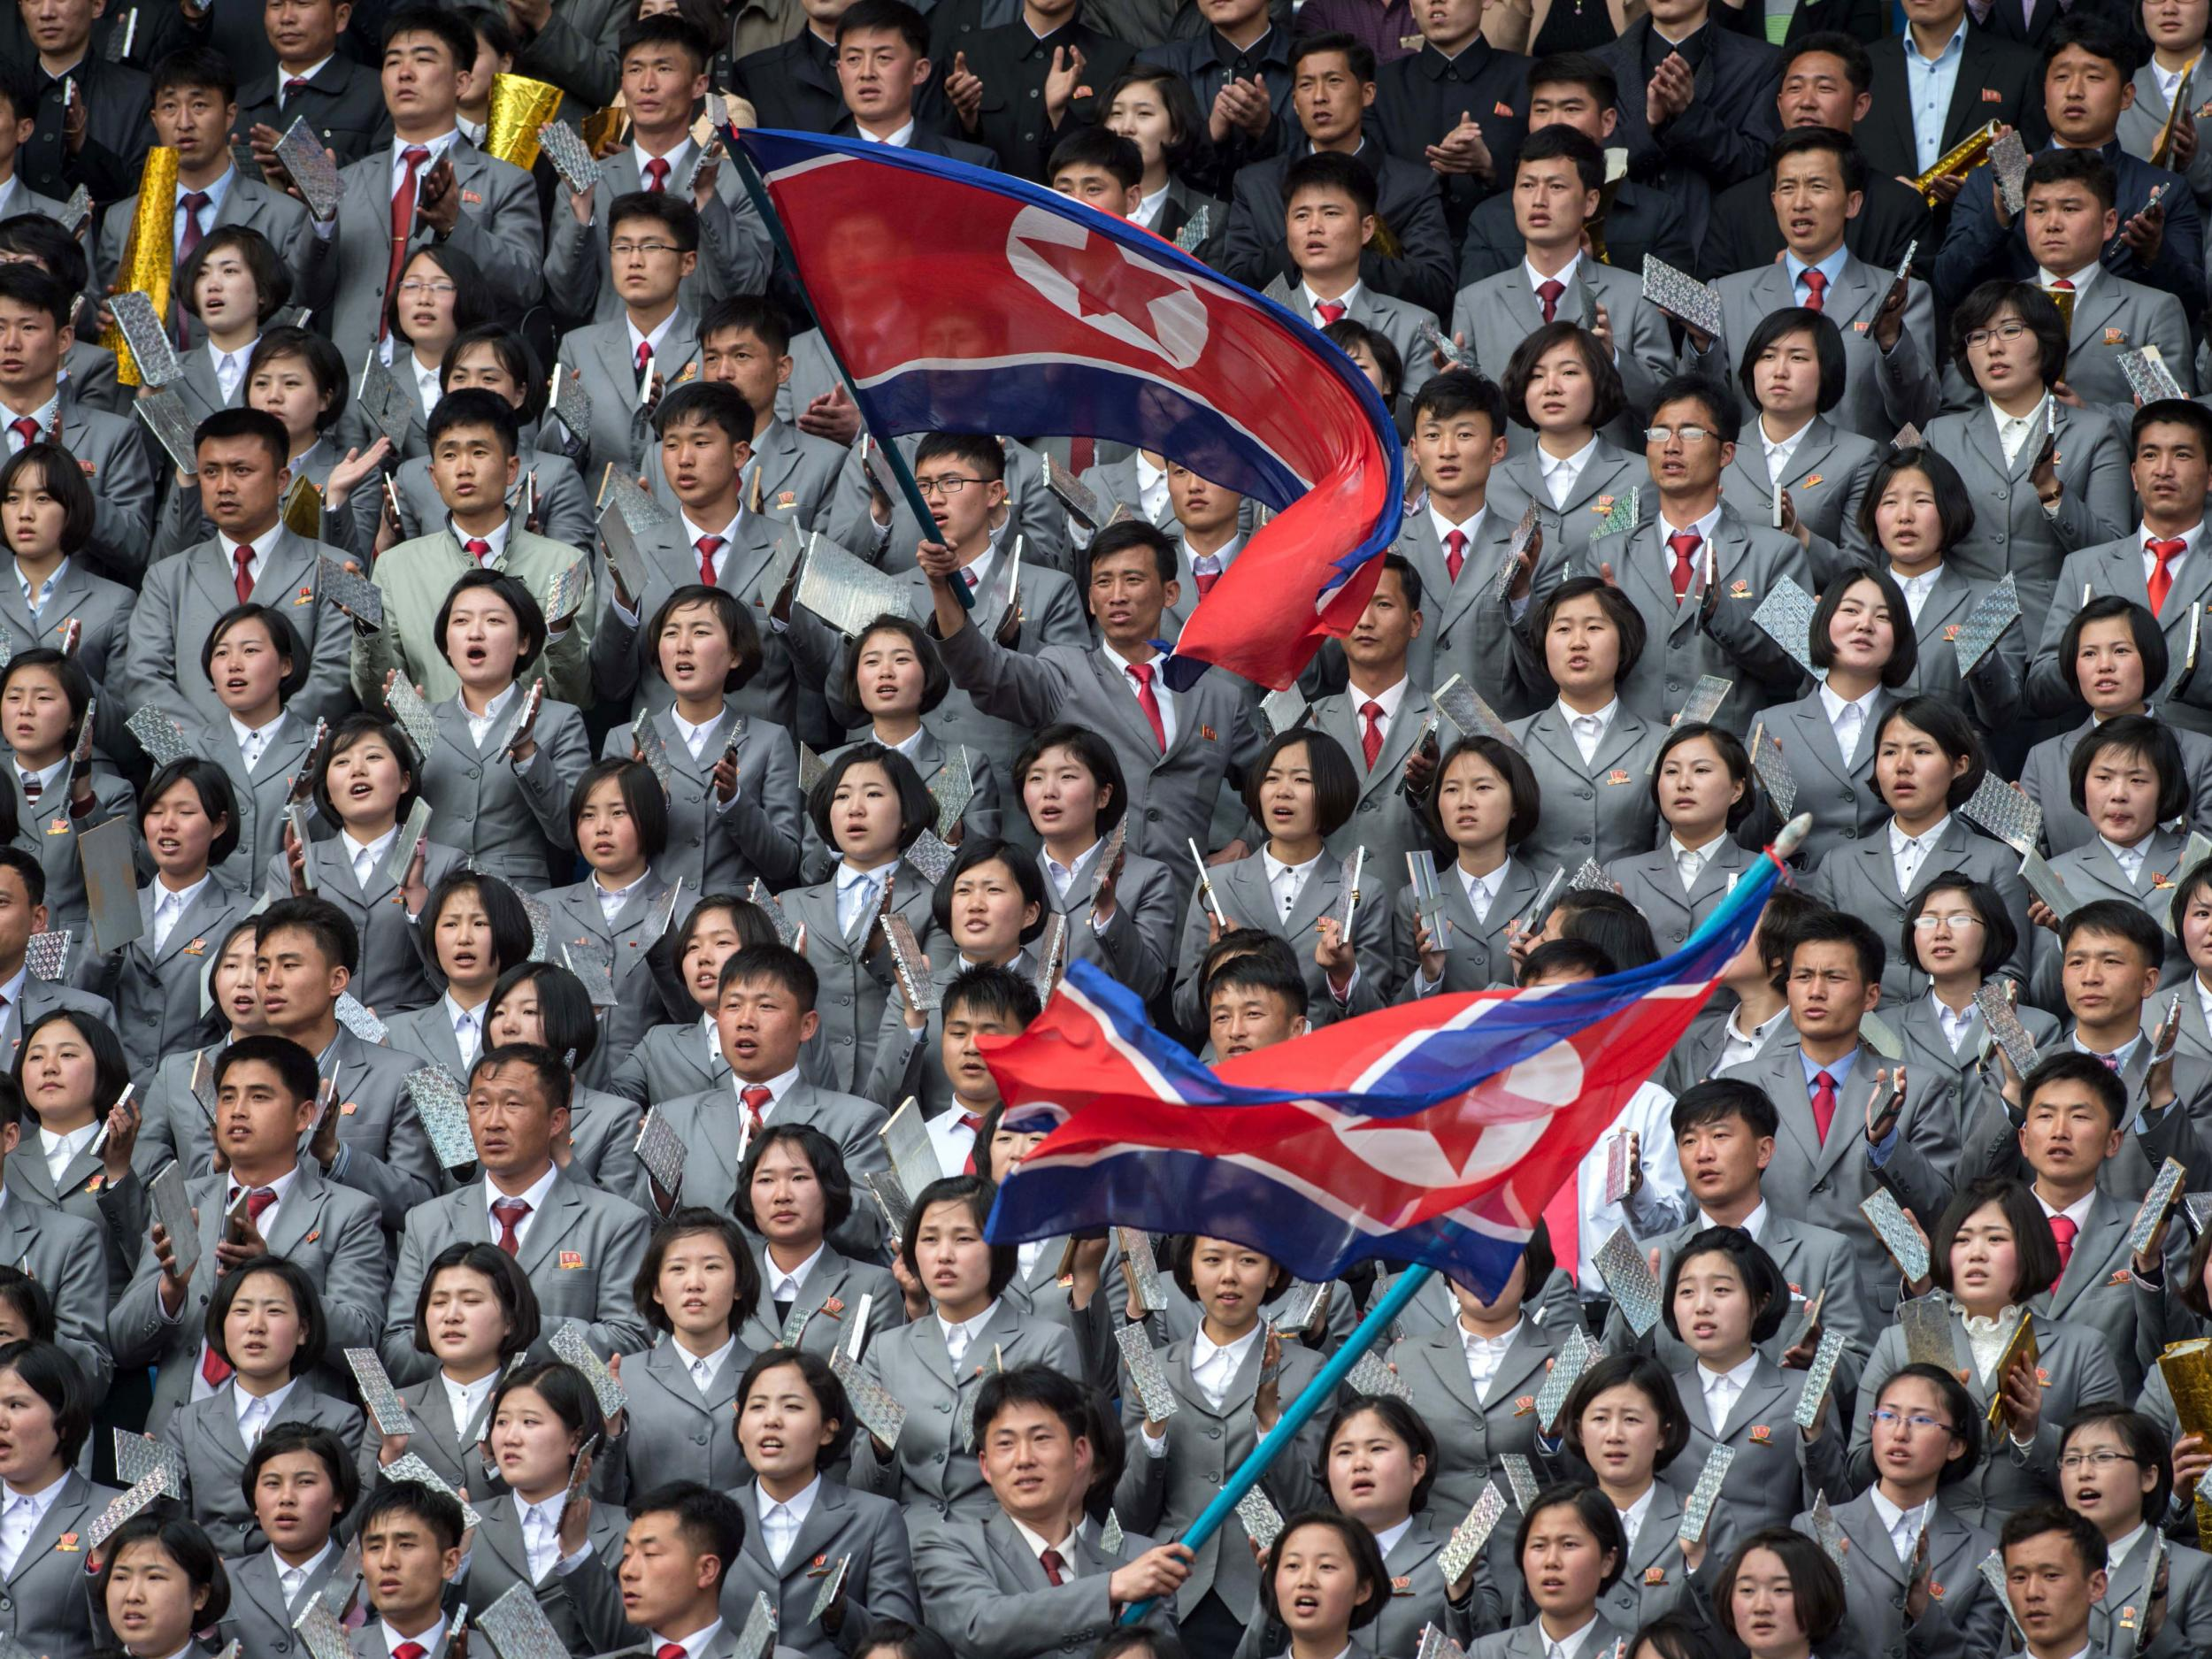 Political slogans, matching suits and briefcases: North Korea play the South in an international match like no other